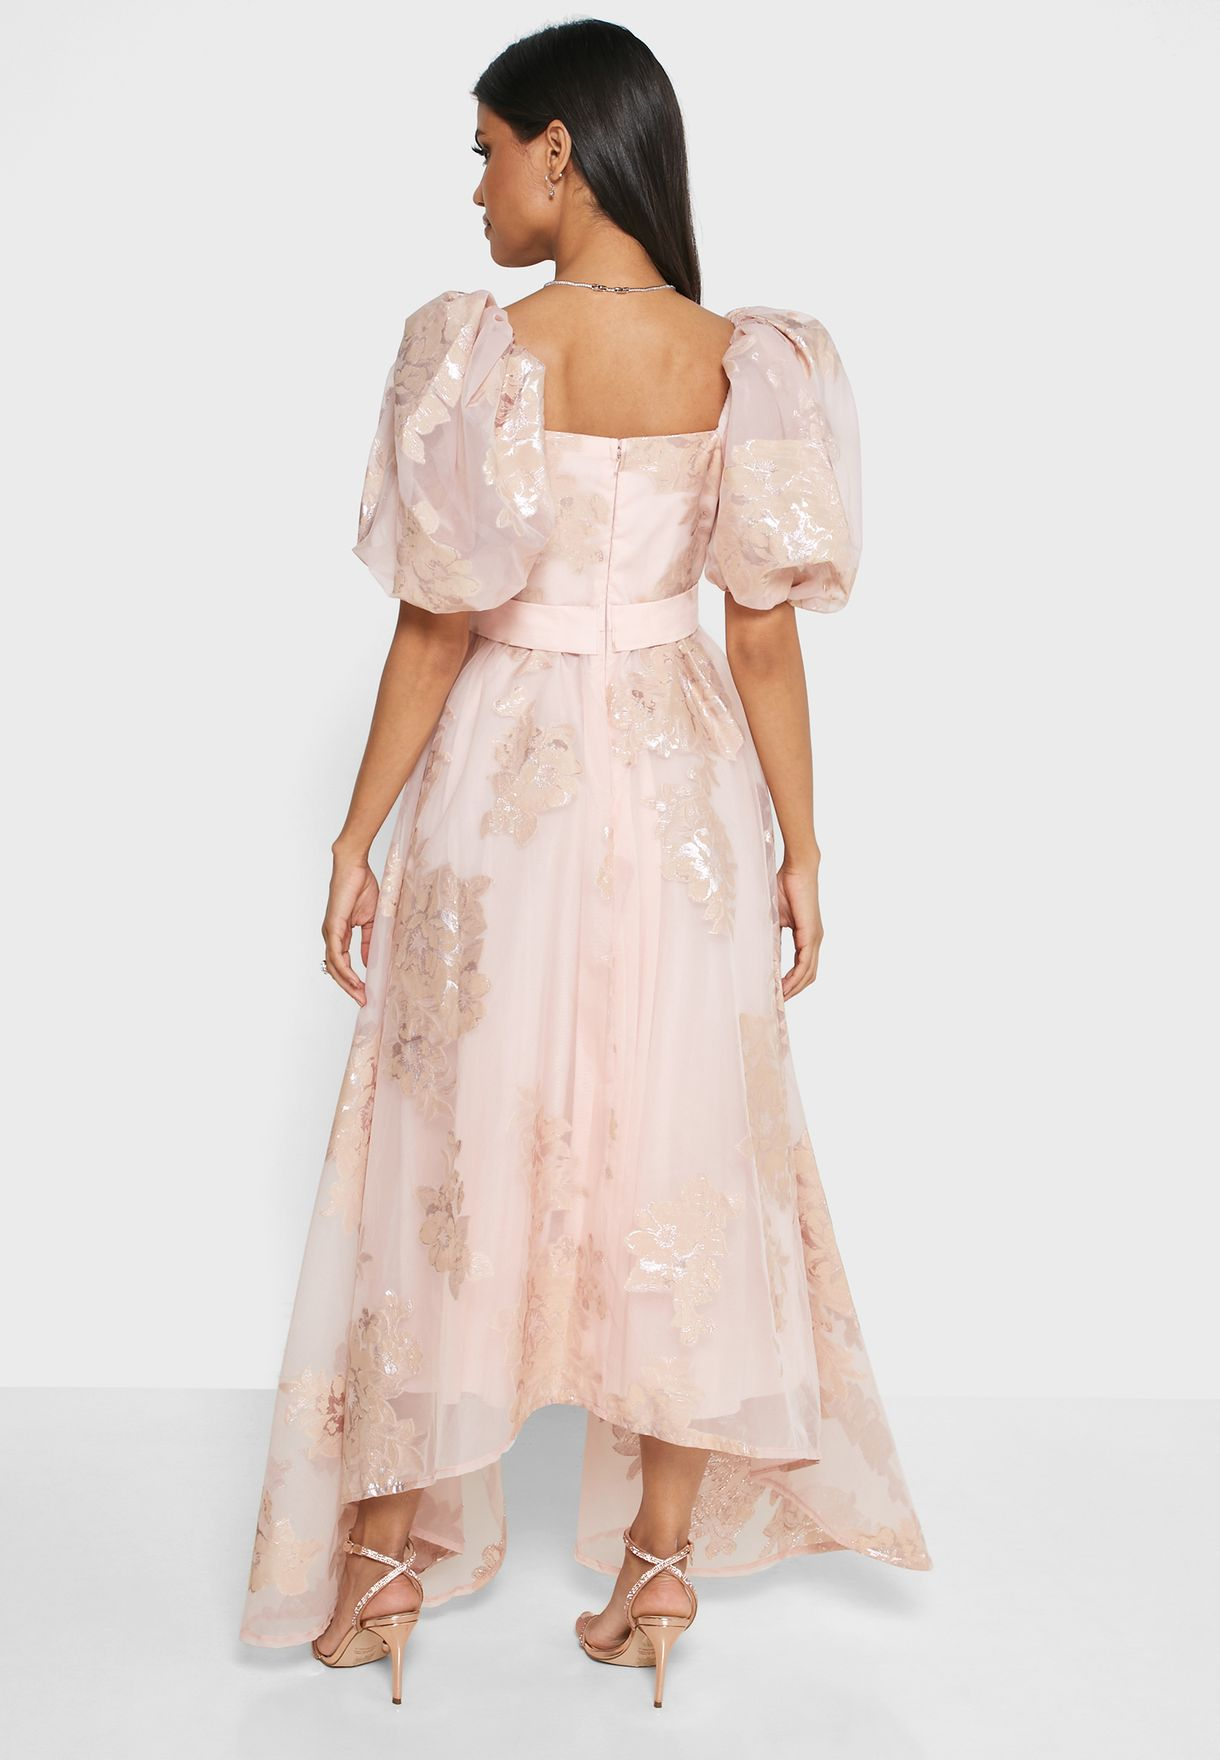 Sweetheart Neckline Organza Dress